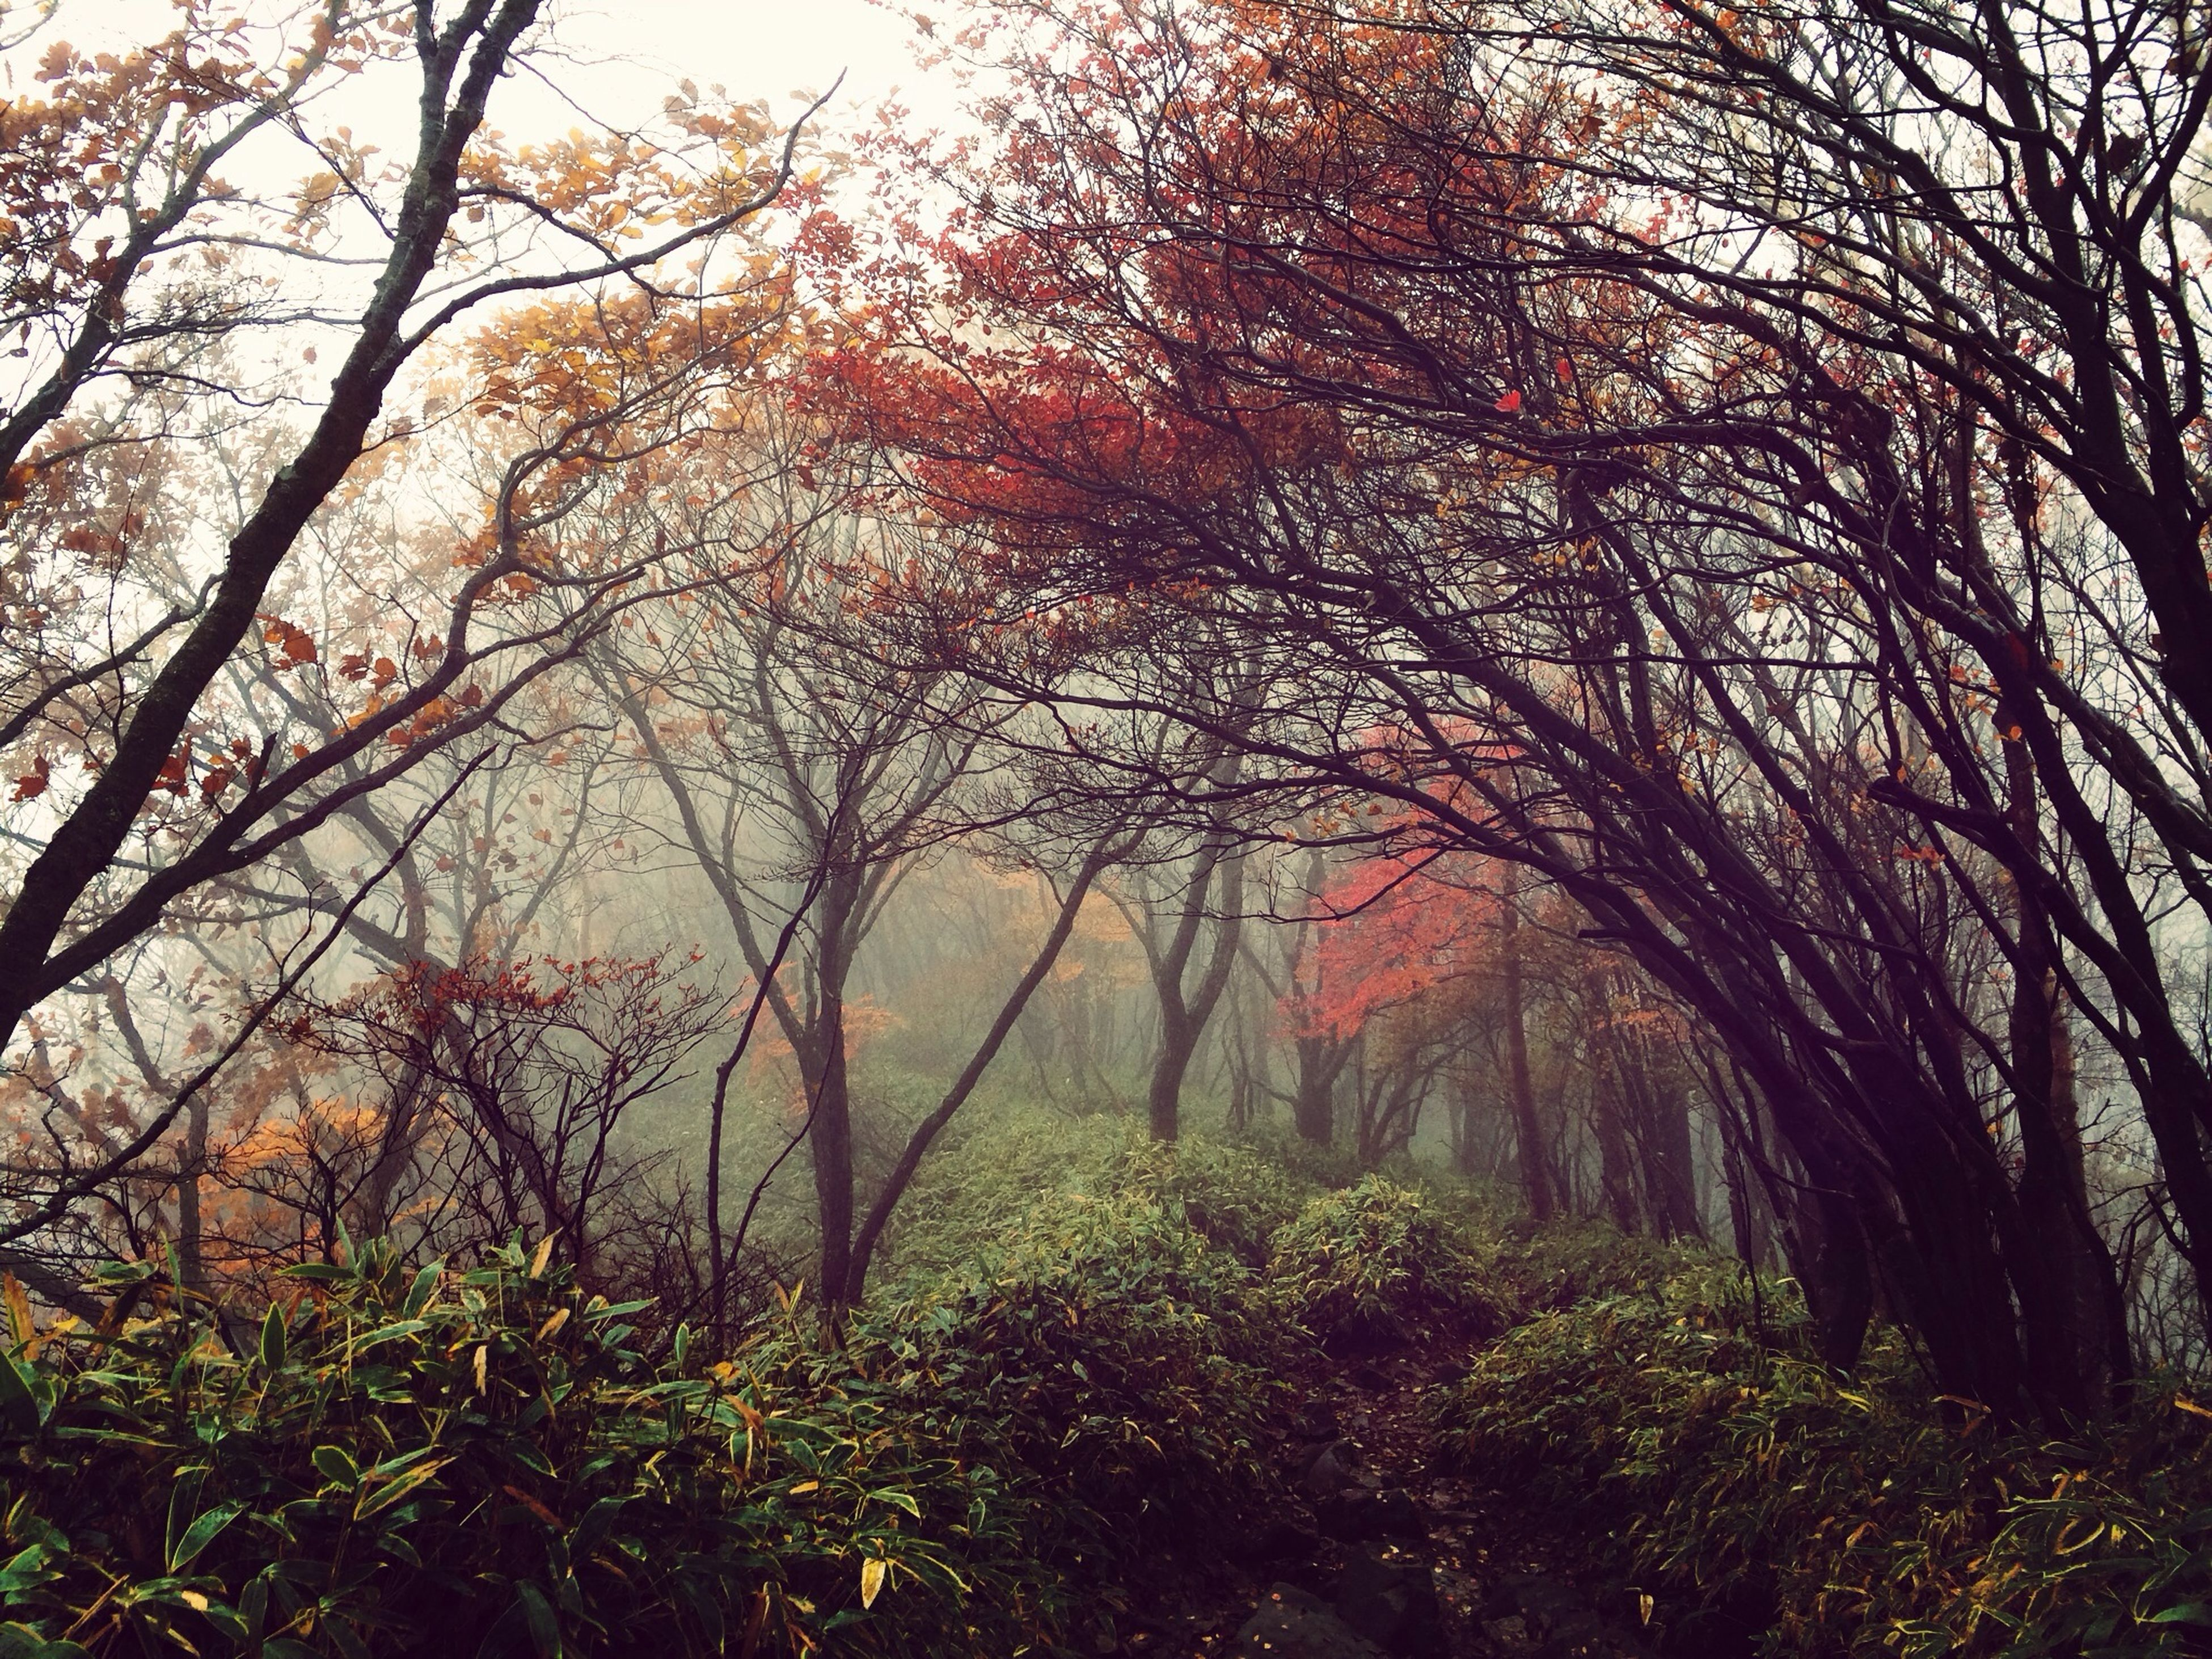 tree, branch, tranquility, growth, forest, tranquil scene, nature, beauty in nature, scenics, tree trunk, woodland, non-urban scene, bare tree, day, outdoors, no people, idyllic, sky, autumn, fog